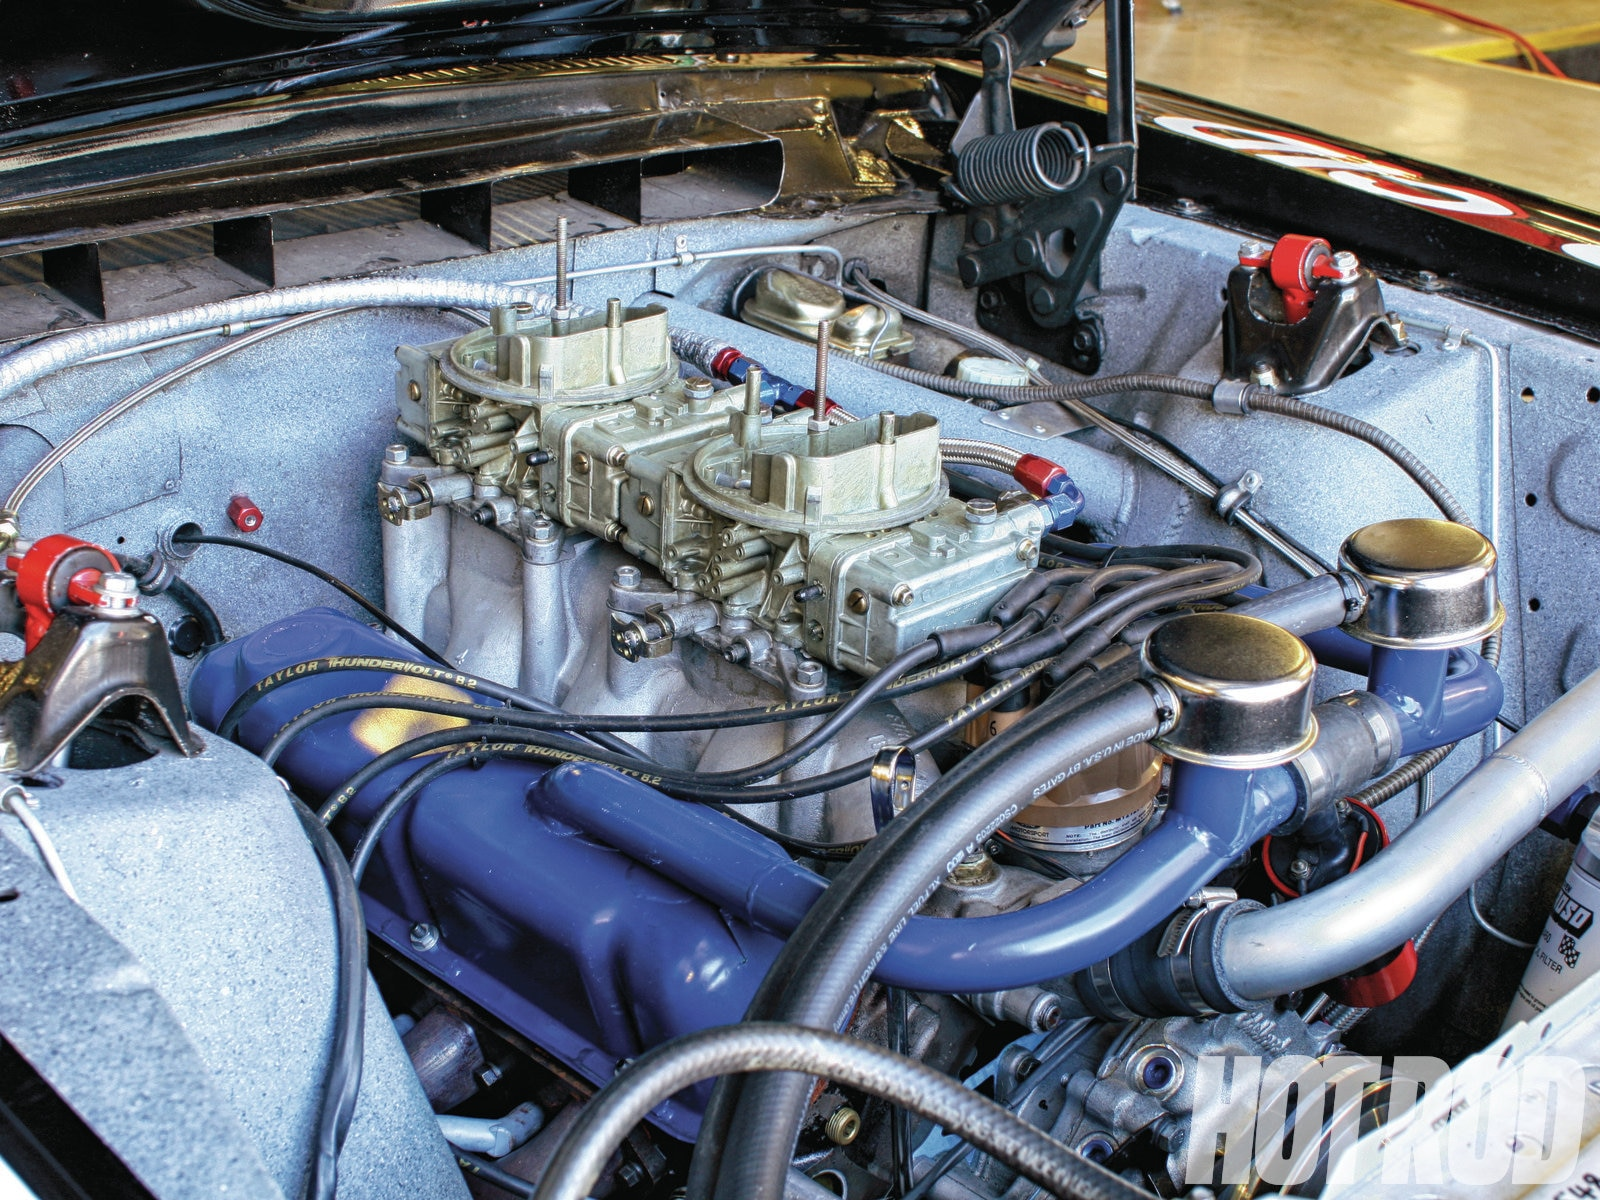 68 ford 302 engine diagram free download introduction to ford ignition wiring diagram 1979 ford 302 [ 1600 x 1200 Pixel ]